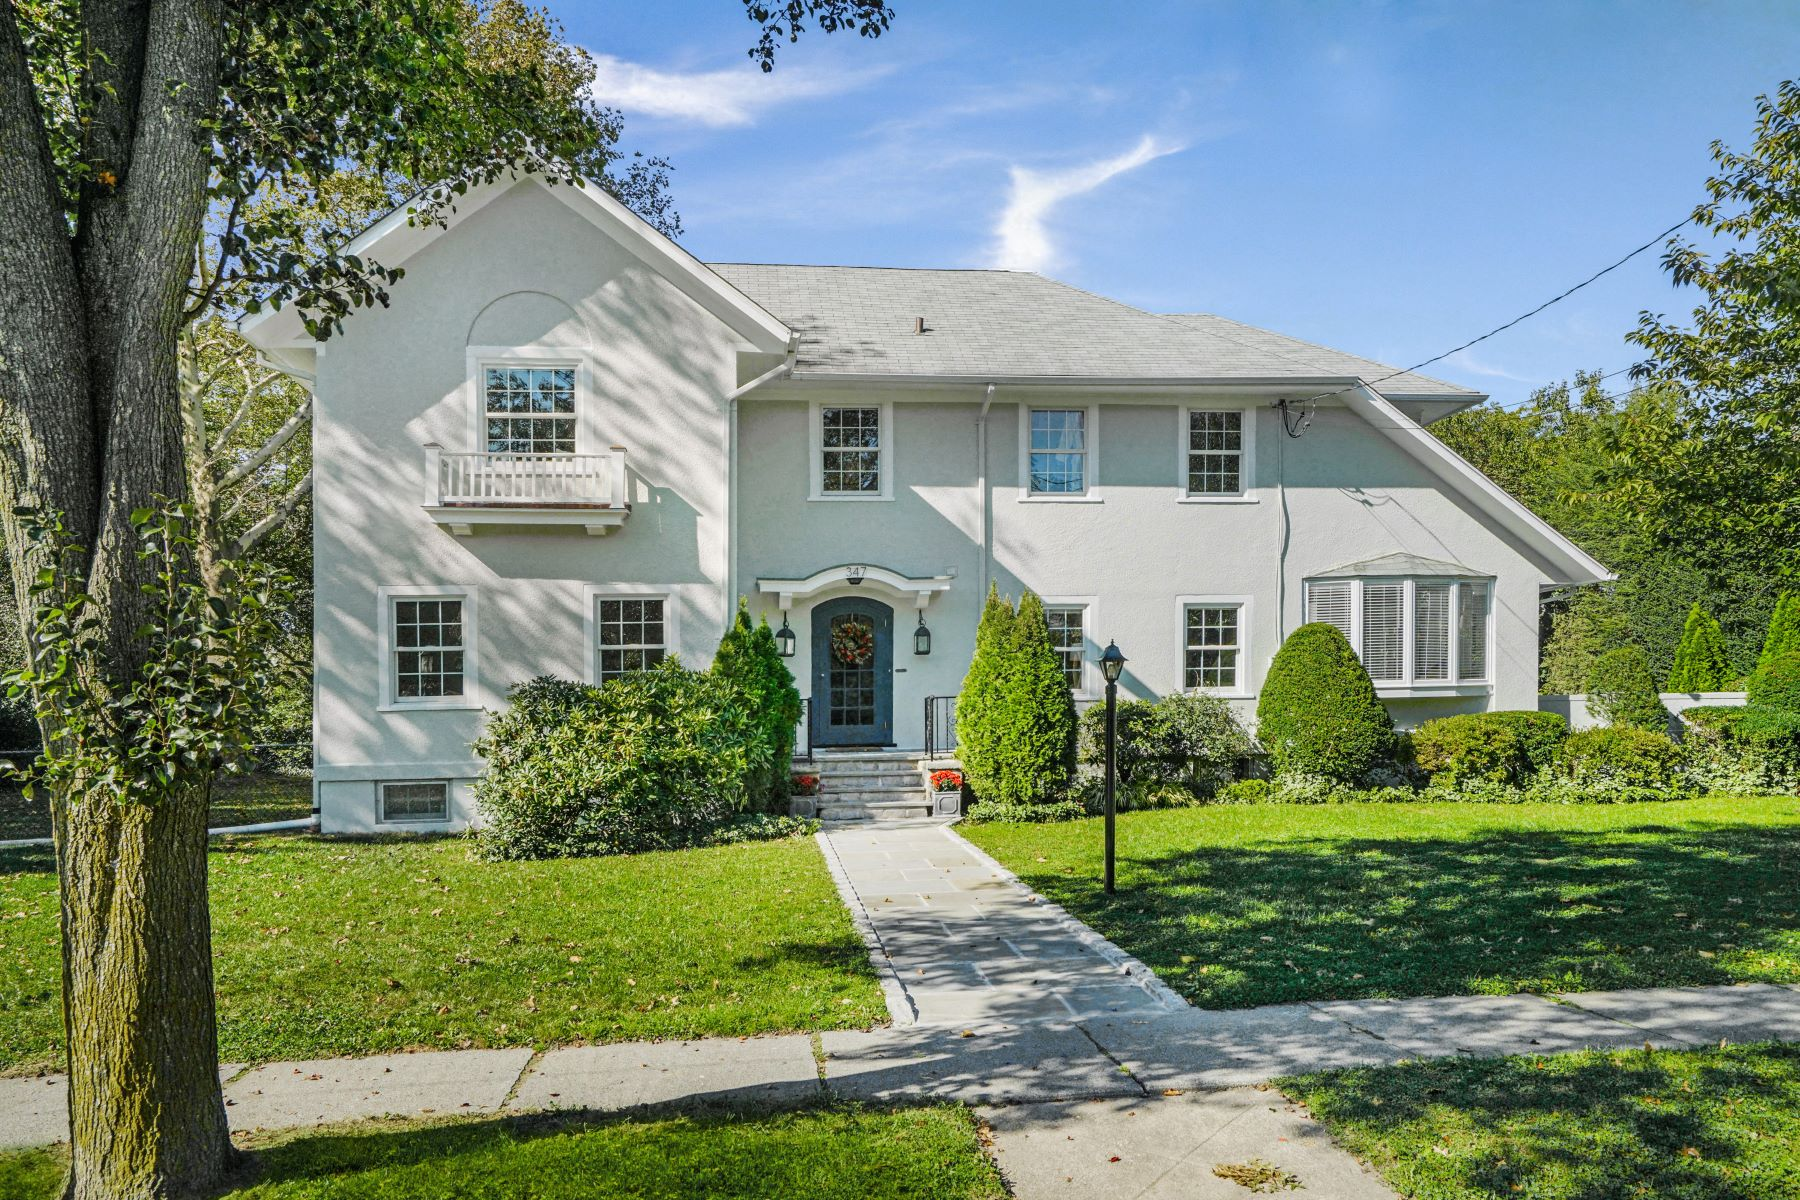 Single Family Home for Sale at Design Perfection 347 Highbrook Avenue Pelham, New York 10803 United States